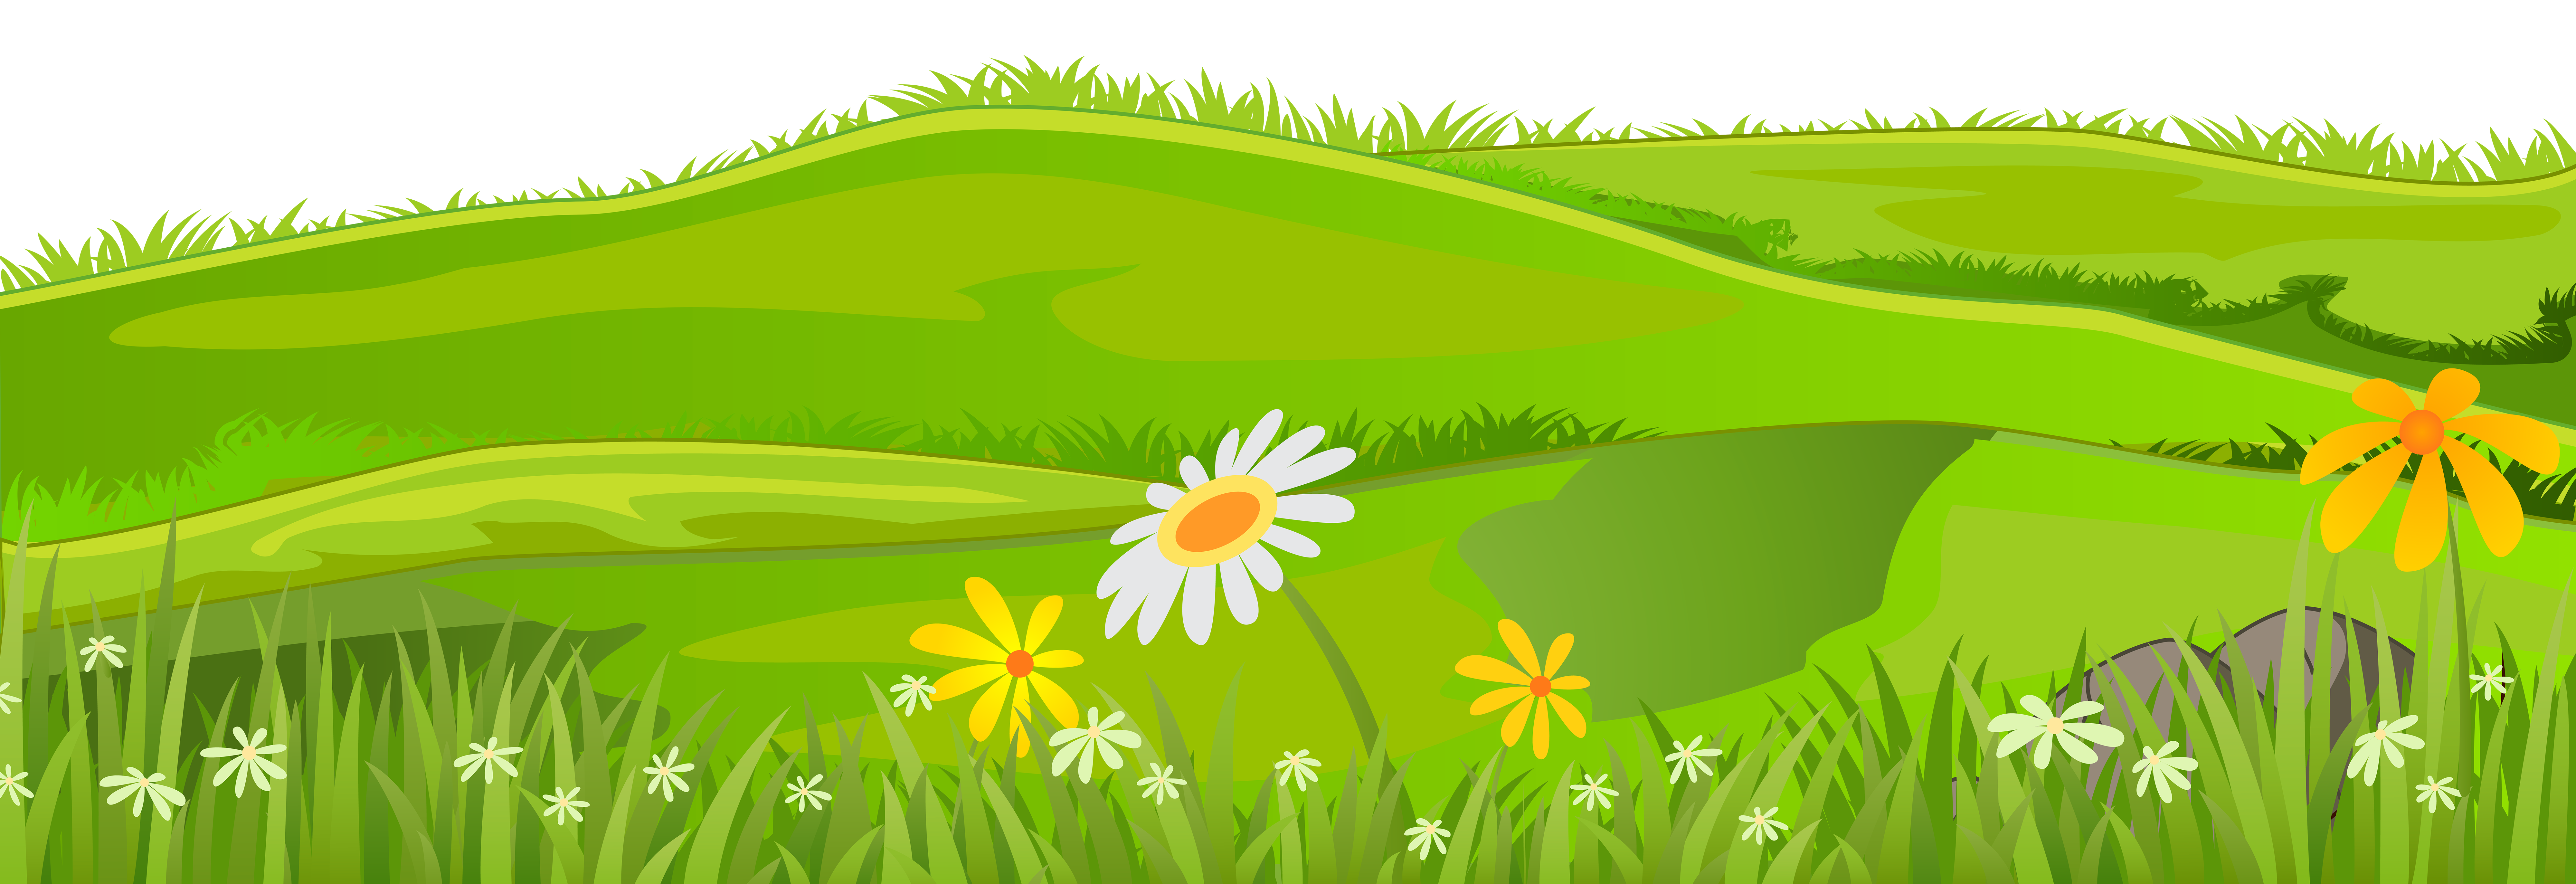 Pathway clipart mountain. Grass cover png clip